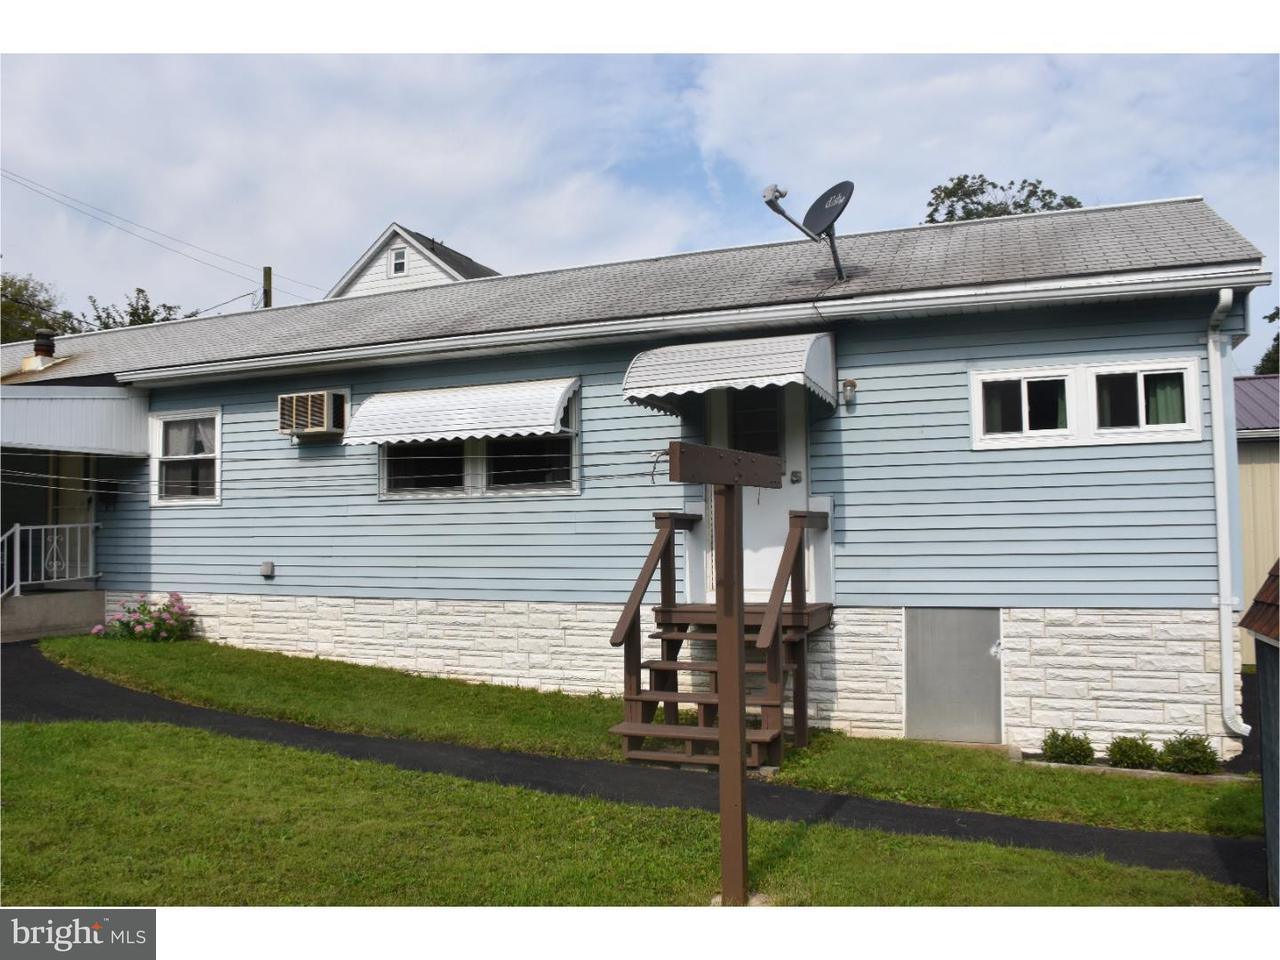 Single Family Home for Rent at 7 SCHUMACHER Avenue Schuylkill Haven, Pennsylvania 17972 United States